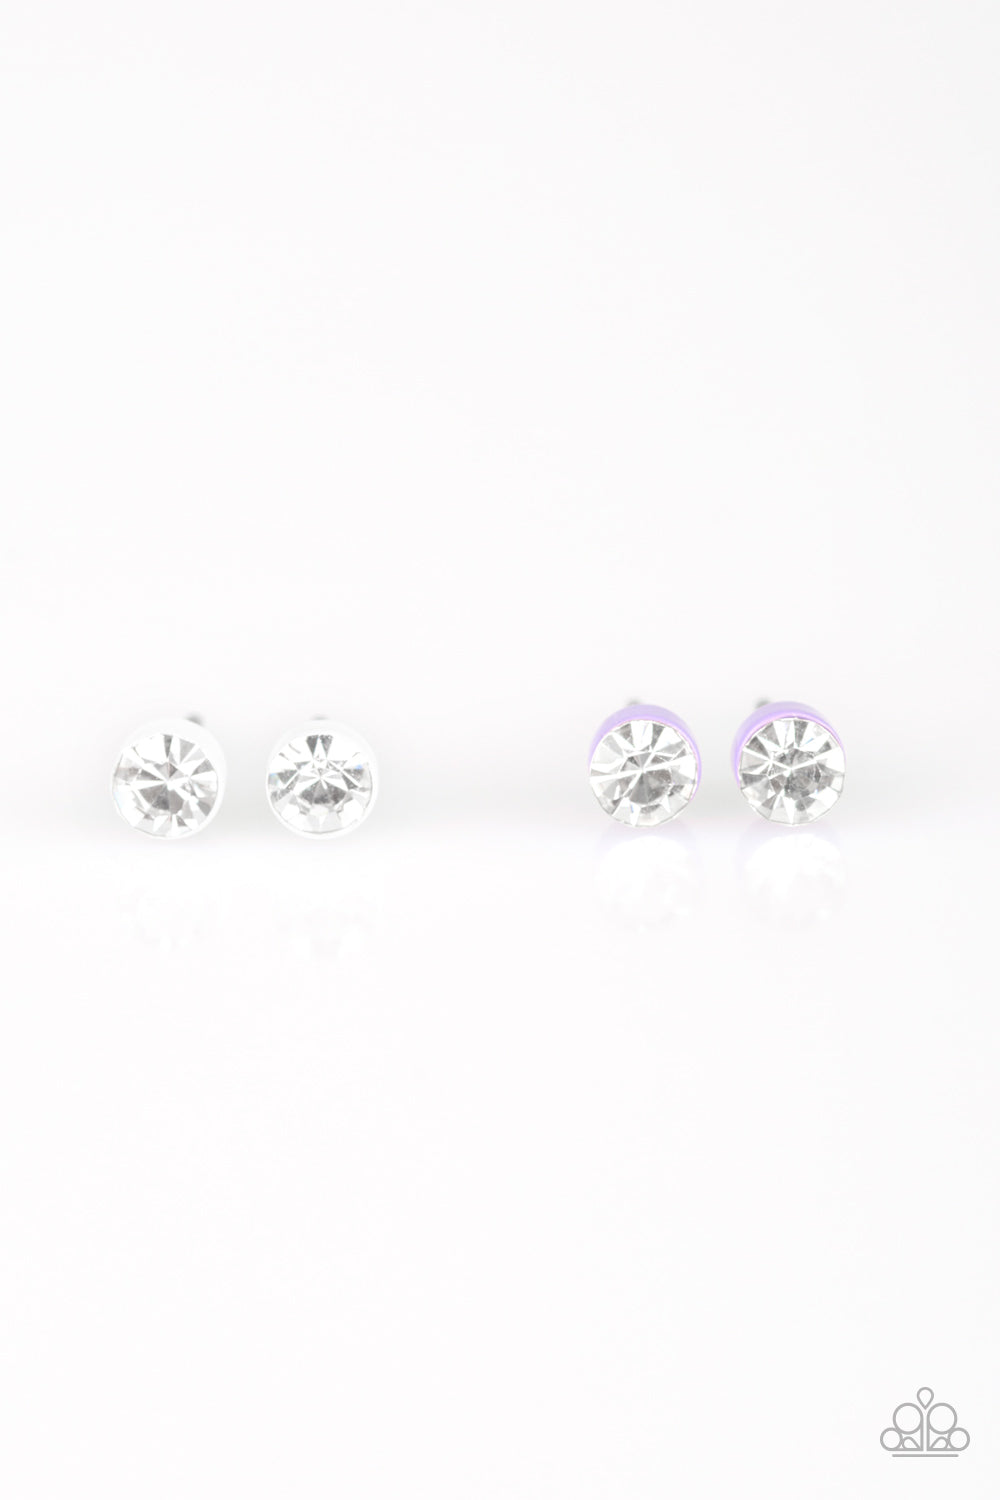 Mini Rhinestone Studs - Paparazzi Starlet Shimmer - Pink Dragon Jewels